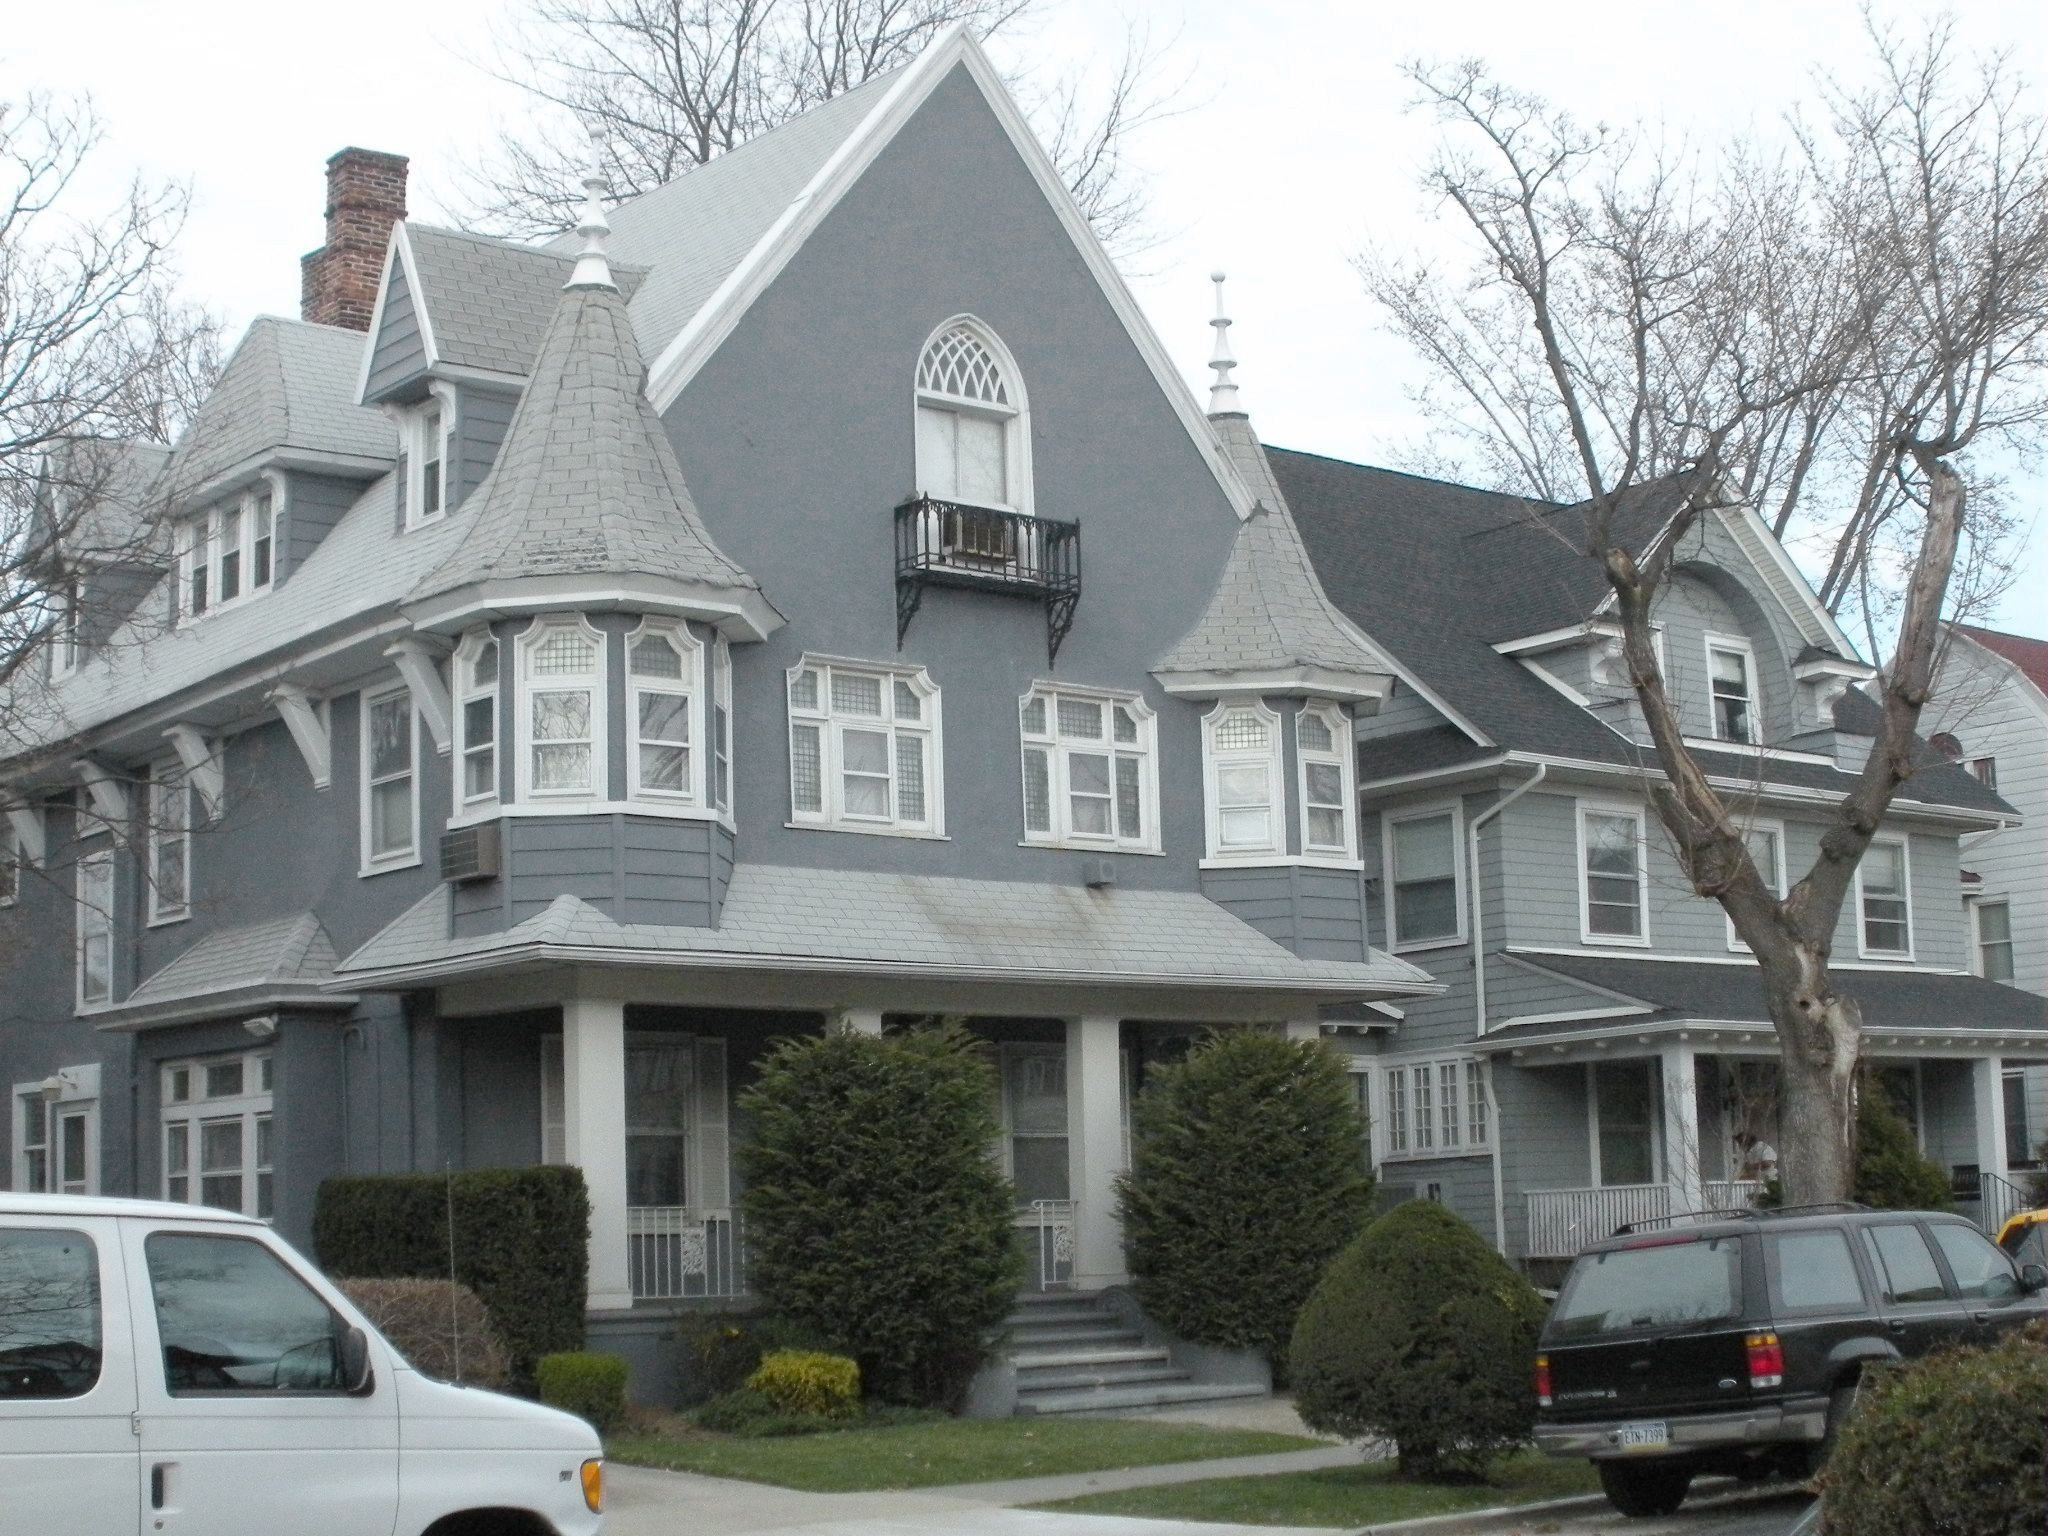 victorian era houses victorian era style houses in ditmas park brooklyn new york - Victorian Style House